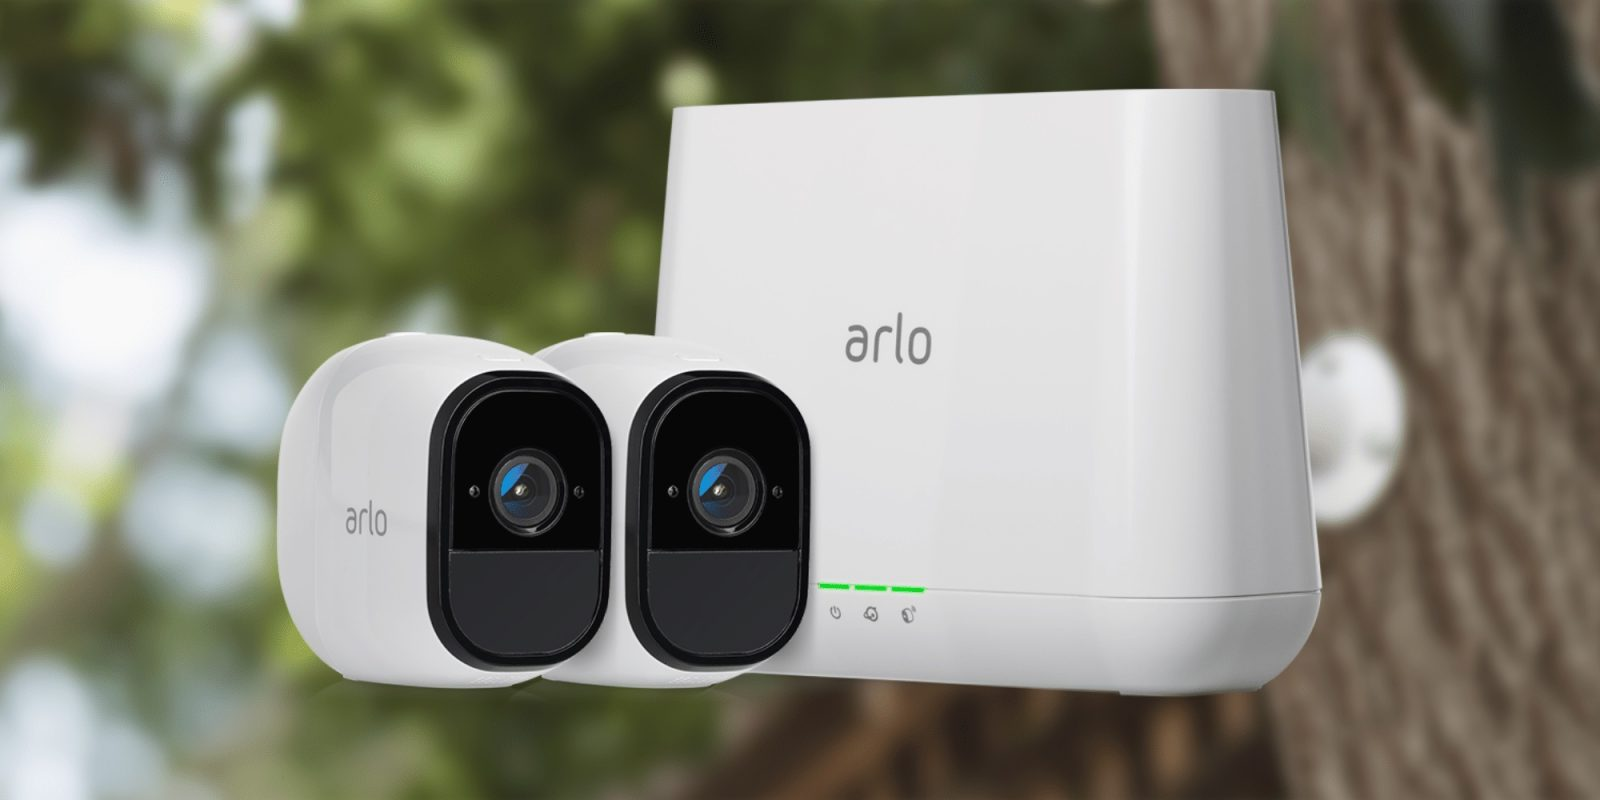 Score Arlo's Pro 2 Two-Camera System at a new all-time low of $271